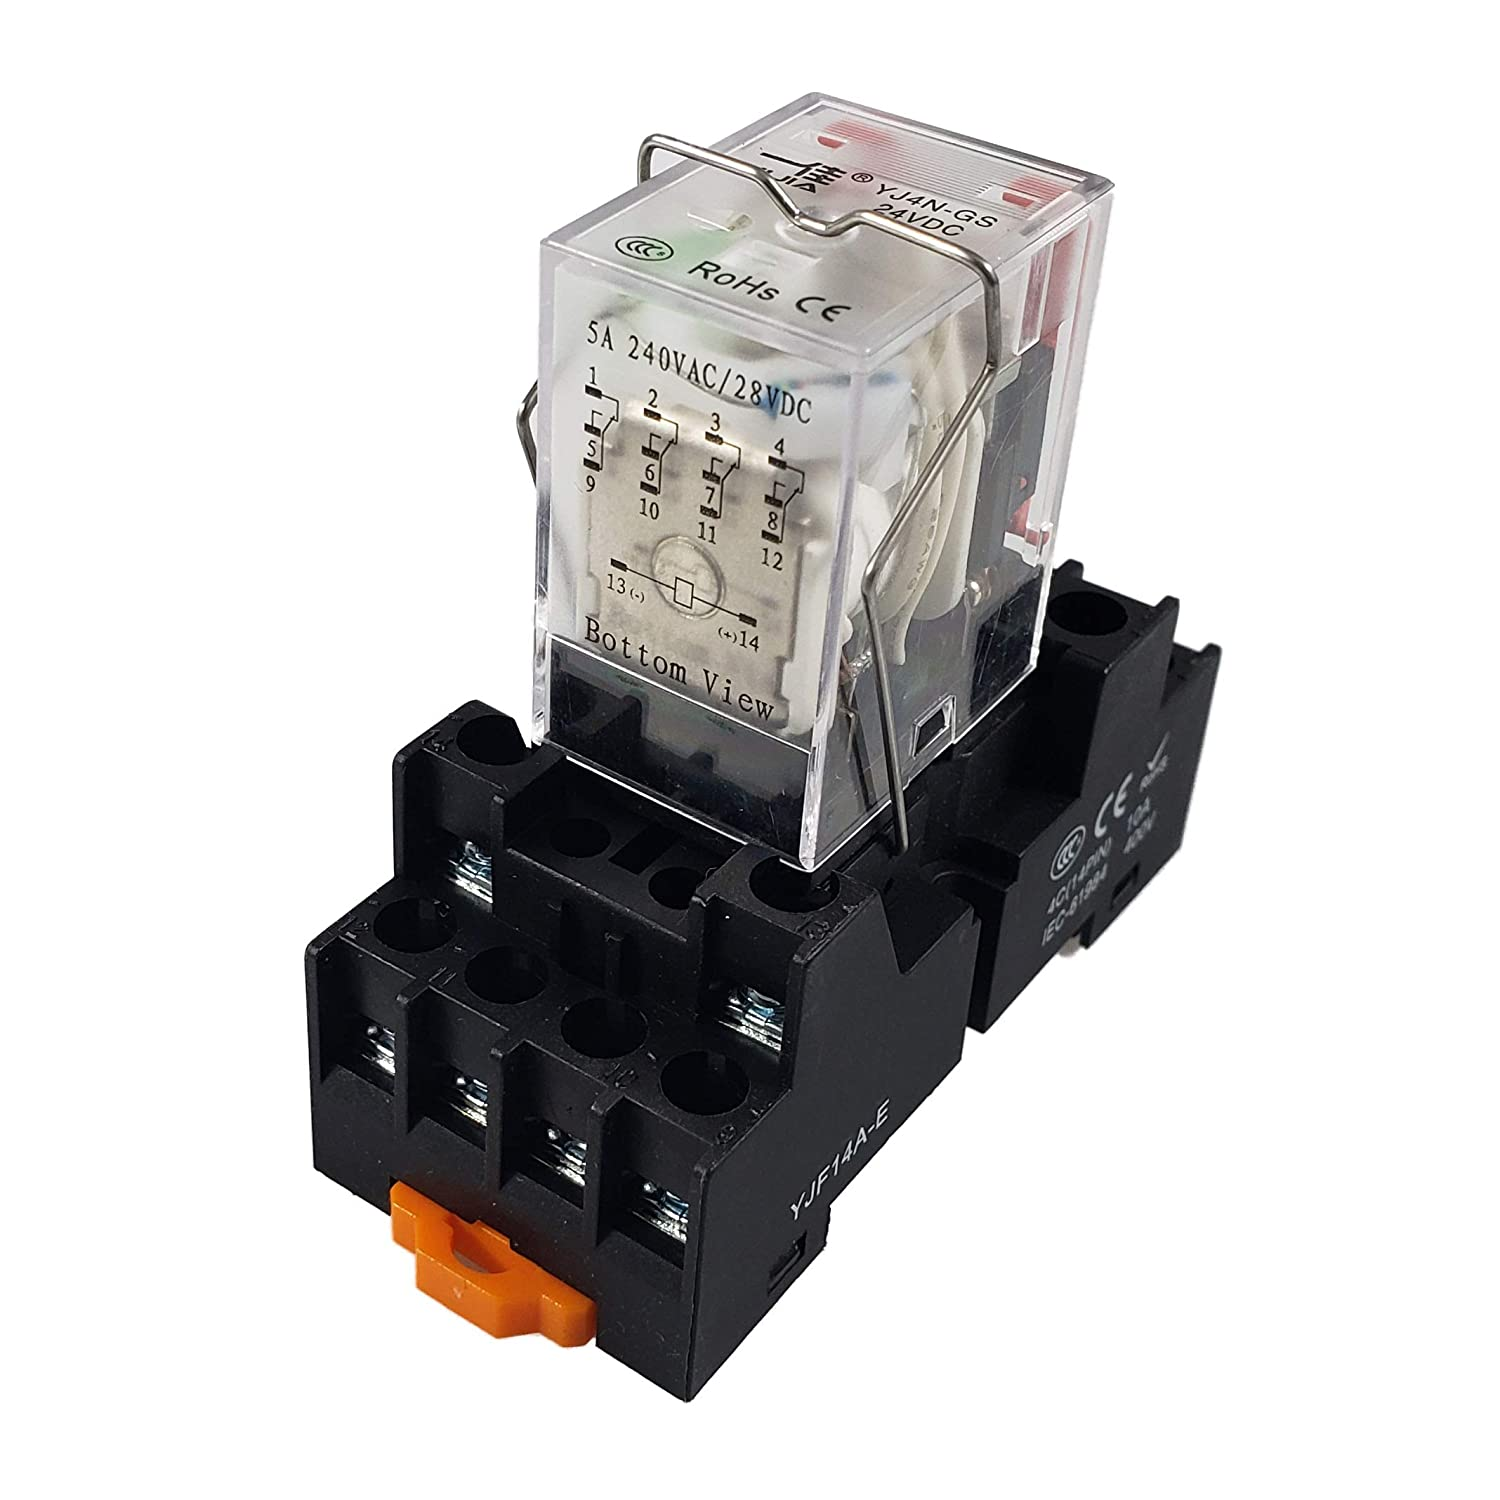 API-ELE 24V DC 3 Year Warranty Electromagnetic Power Relay MY4NJ HH53P Coil 4PDT 4NO+4NC 14 Pins 5A with Indicator Light With Base